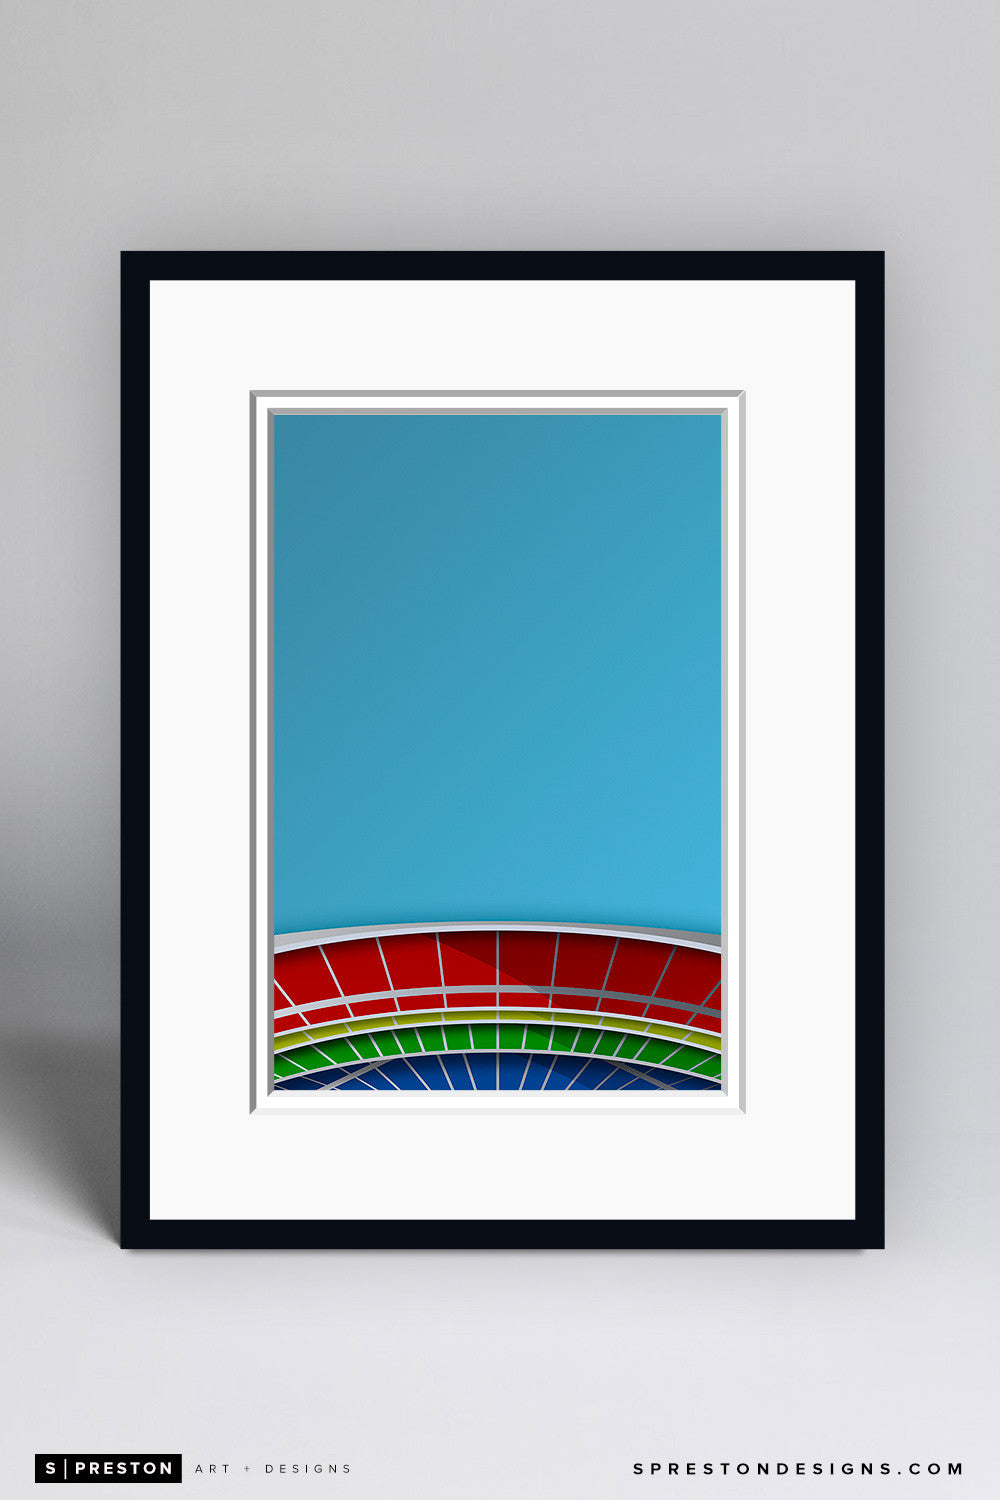 Minimalist Riverfront Stadium Art Print - Cincinnati Reds - S. Preston Art + Designs